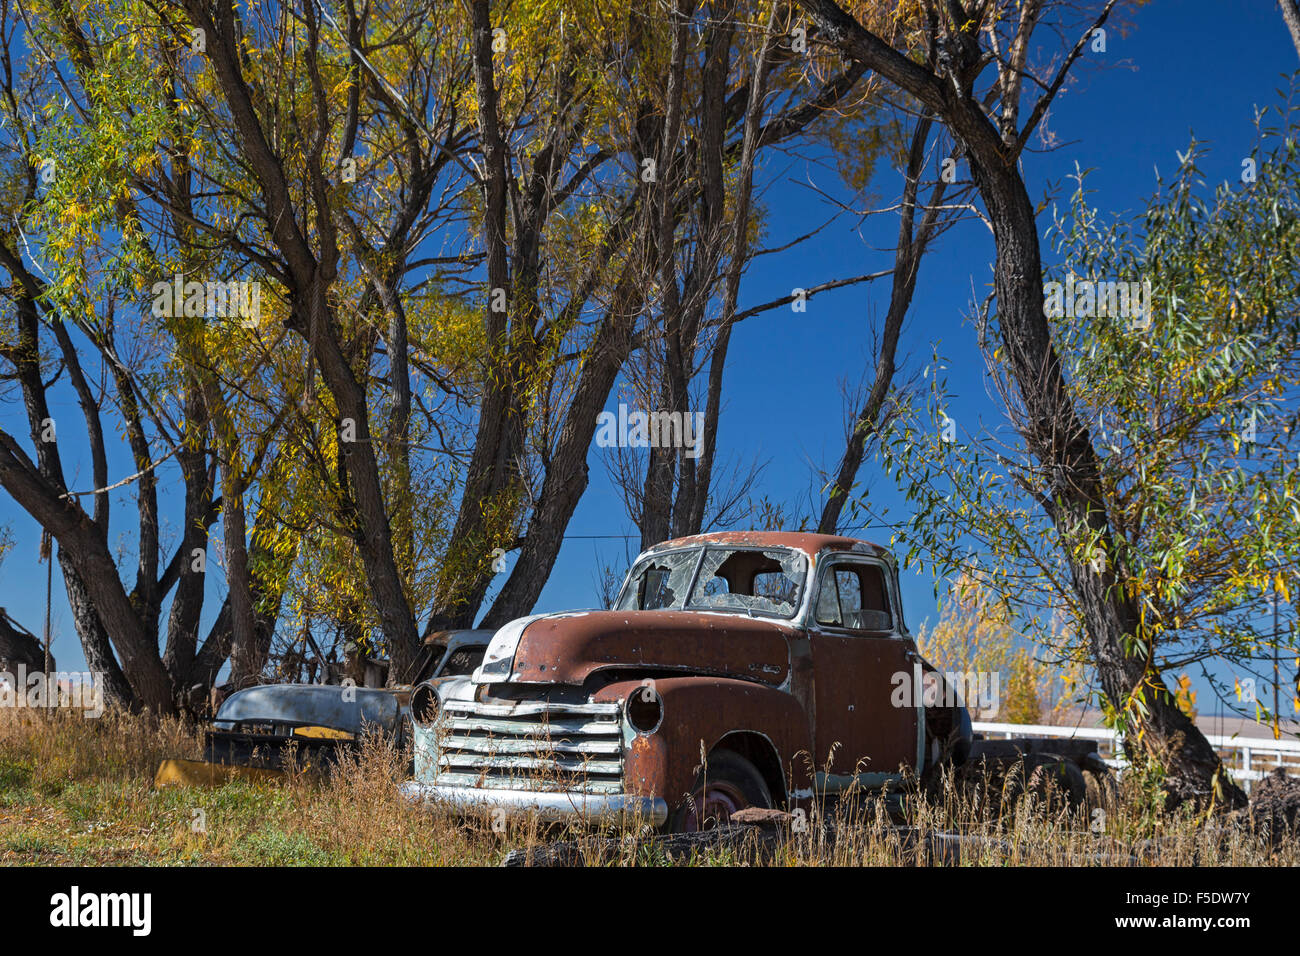 Bountiful, Colorado - An old rusted pickup truck with windows smashed. - Stock Image